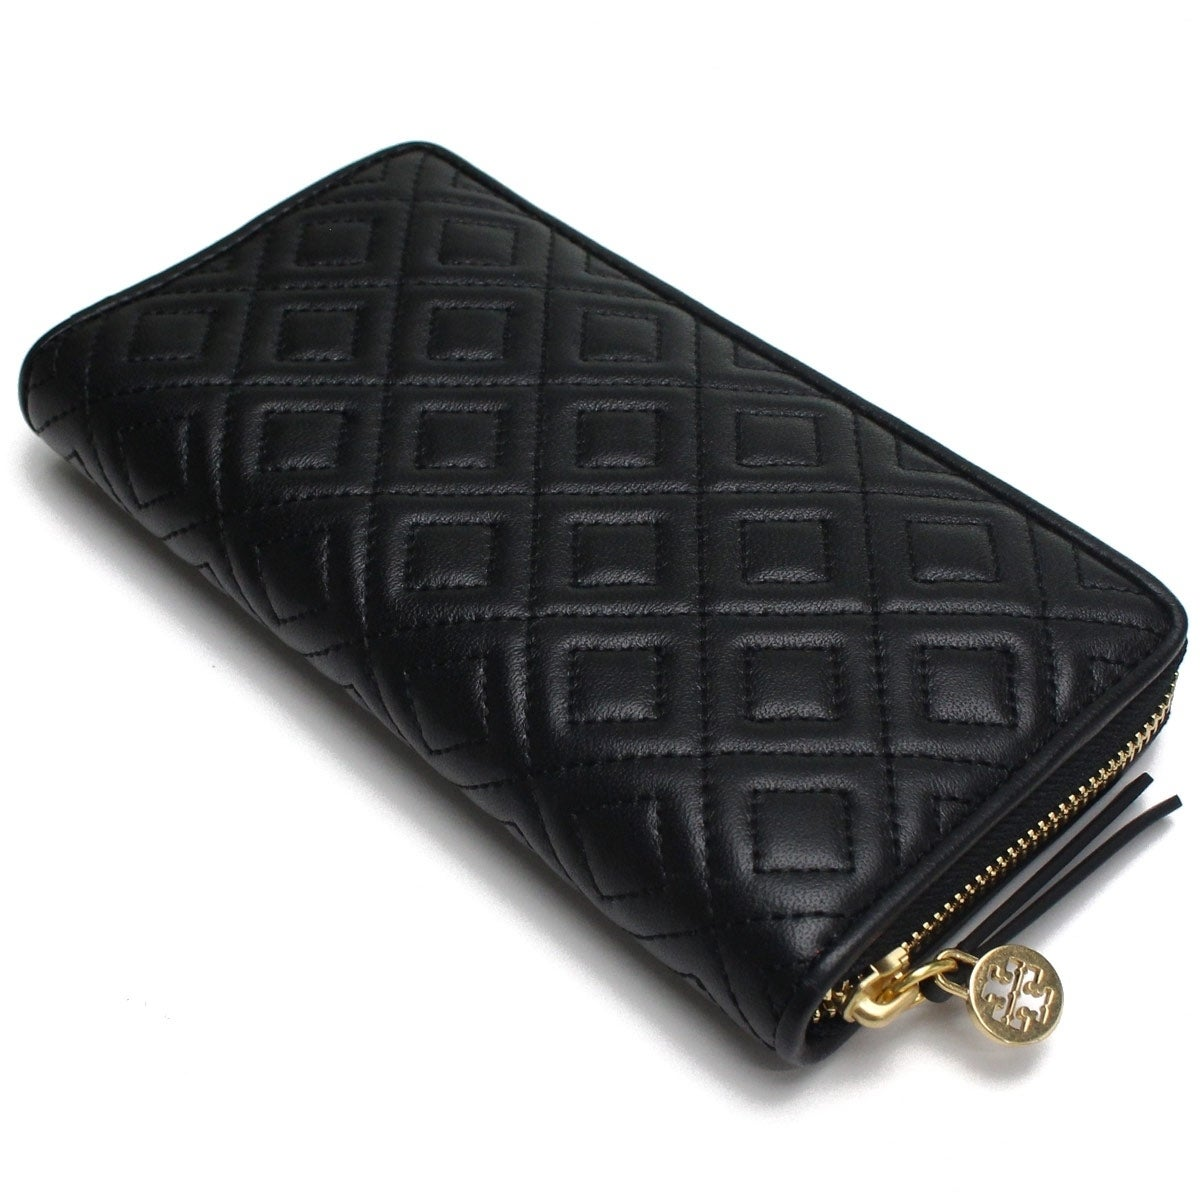 c4b762c8cb81 Shop Tory Burch Fleming Zip Continental Leather Wallet - On Sale - Free  Shipping Today - Overstock - 23449849